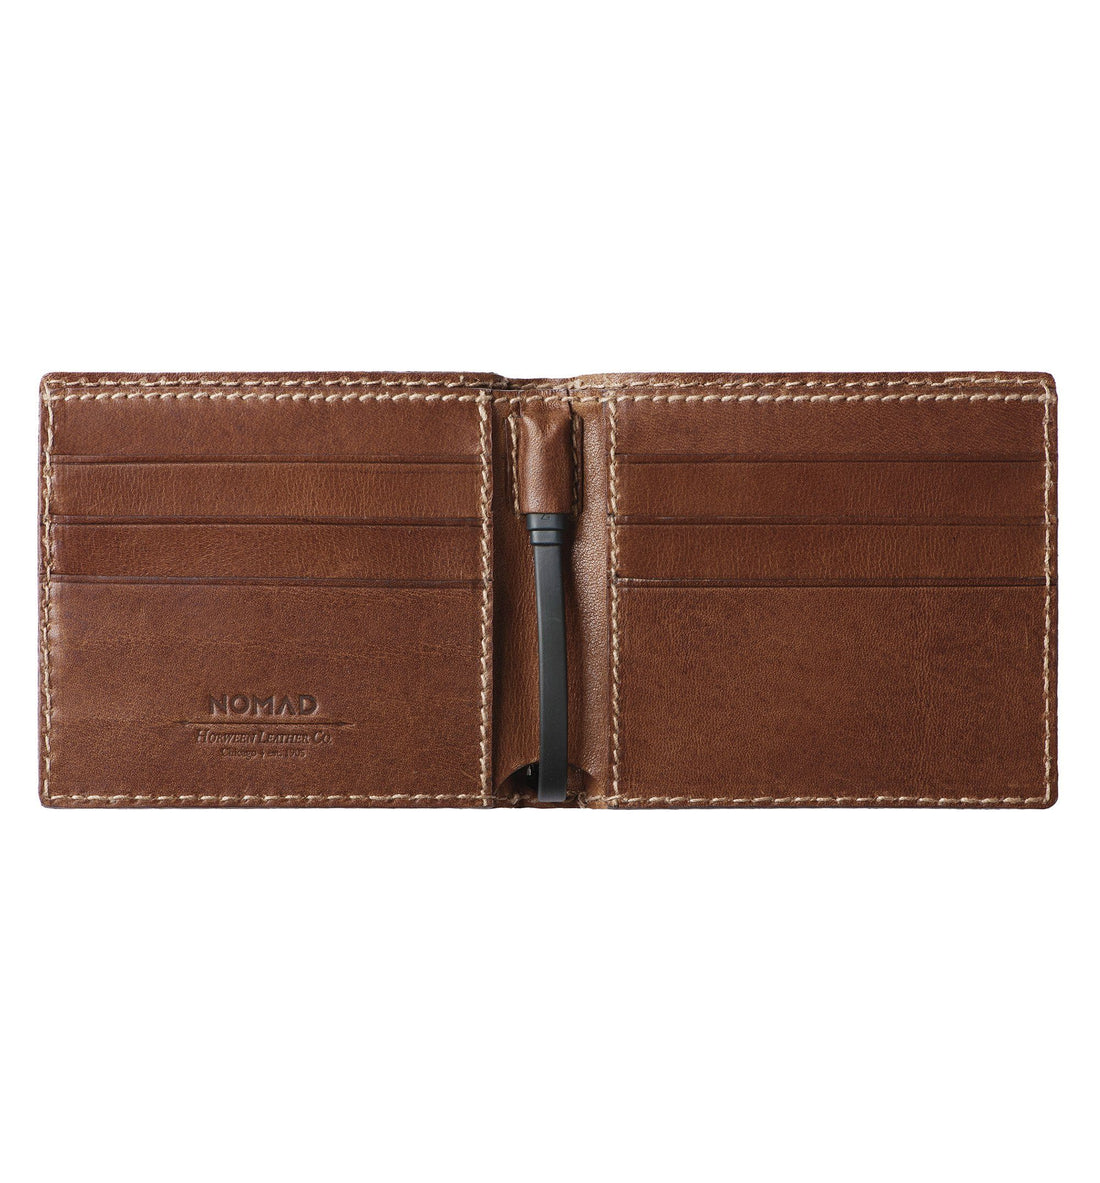 Nomad Battery Bi-Fold Wallet - Rustic Brown - Carry Essentials - Iron and Resin